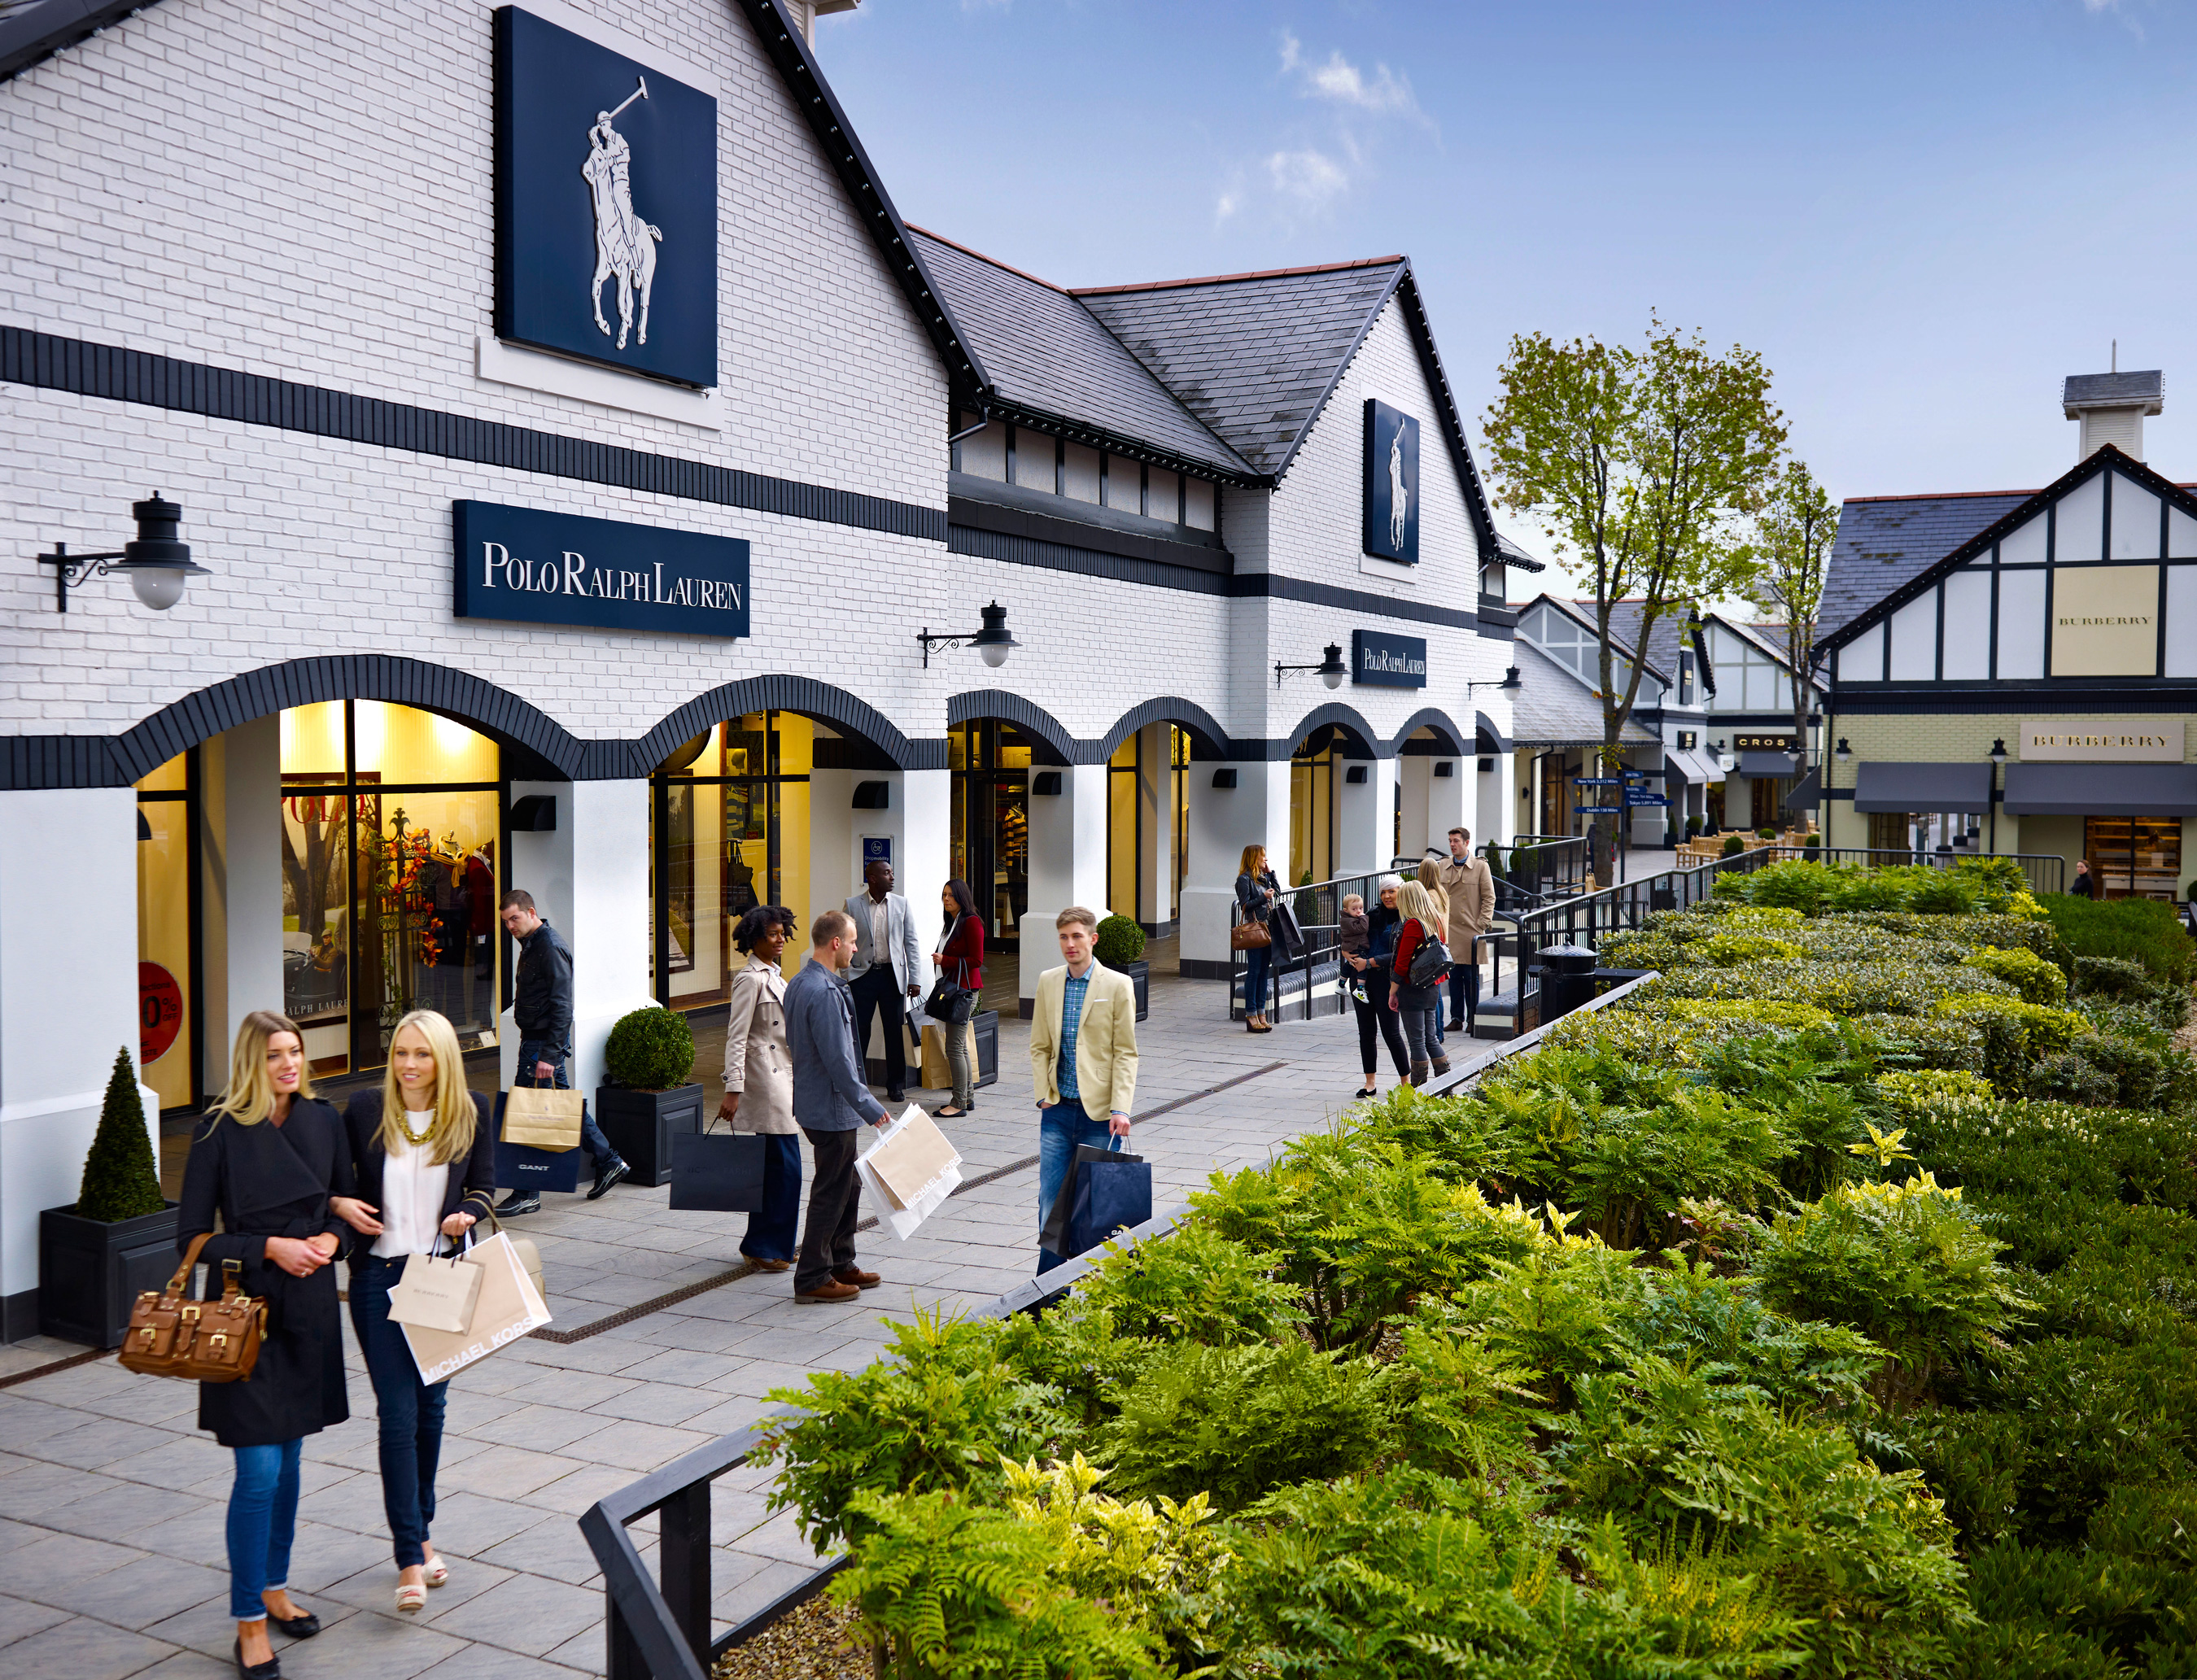 Matt-Stansfield-Photographer-lifestyle-McArthur-Glen-Cheshire-Oaks-shopping-673